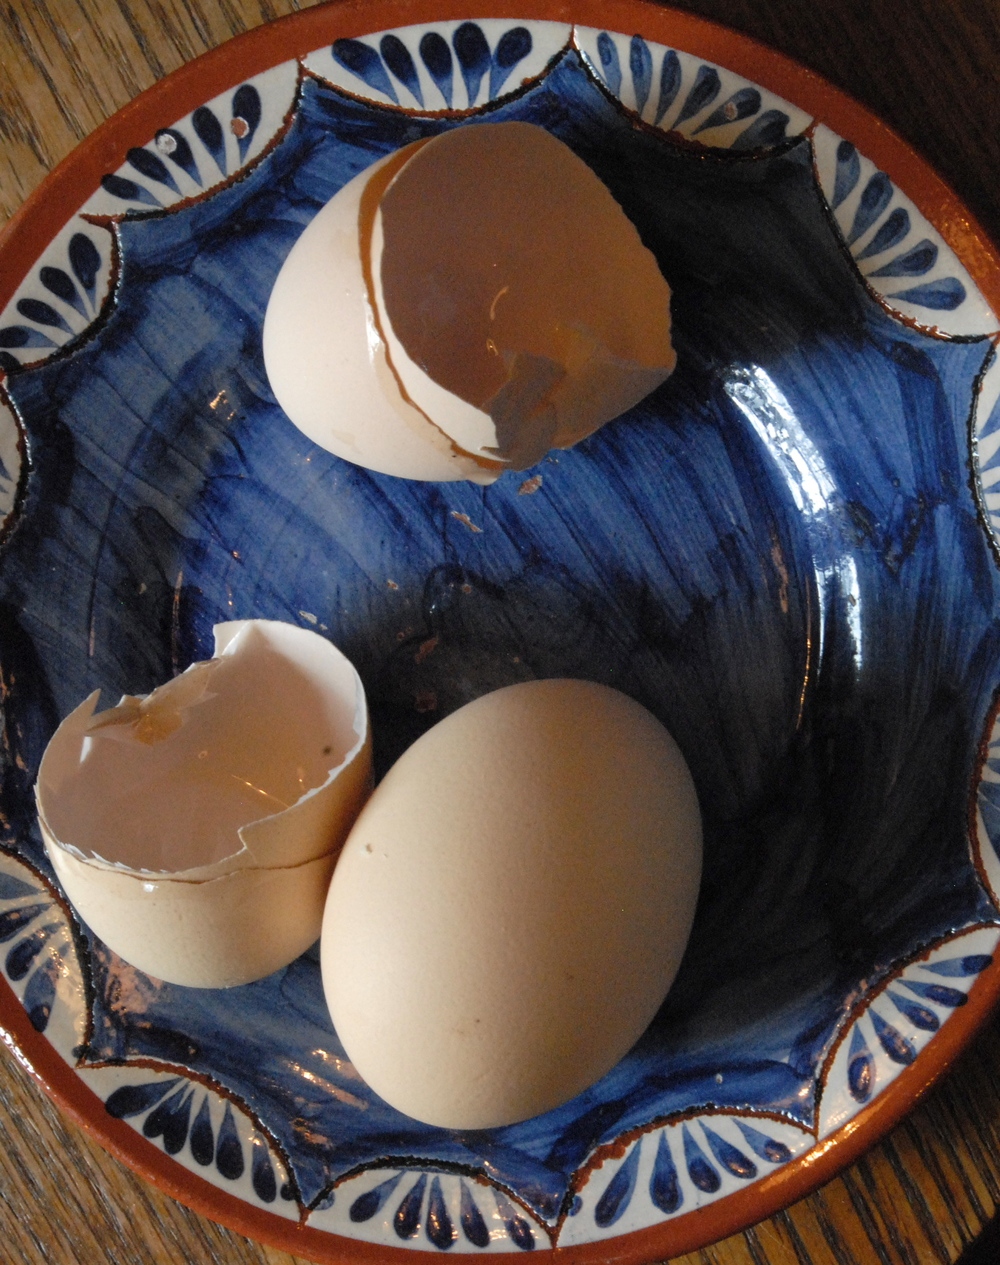 Home-raised eggs